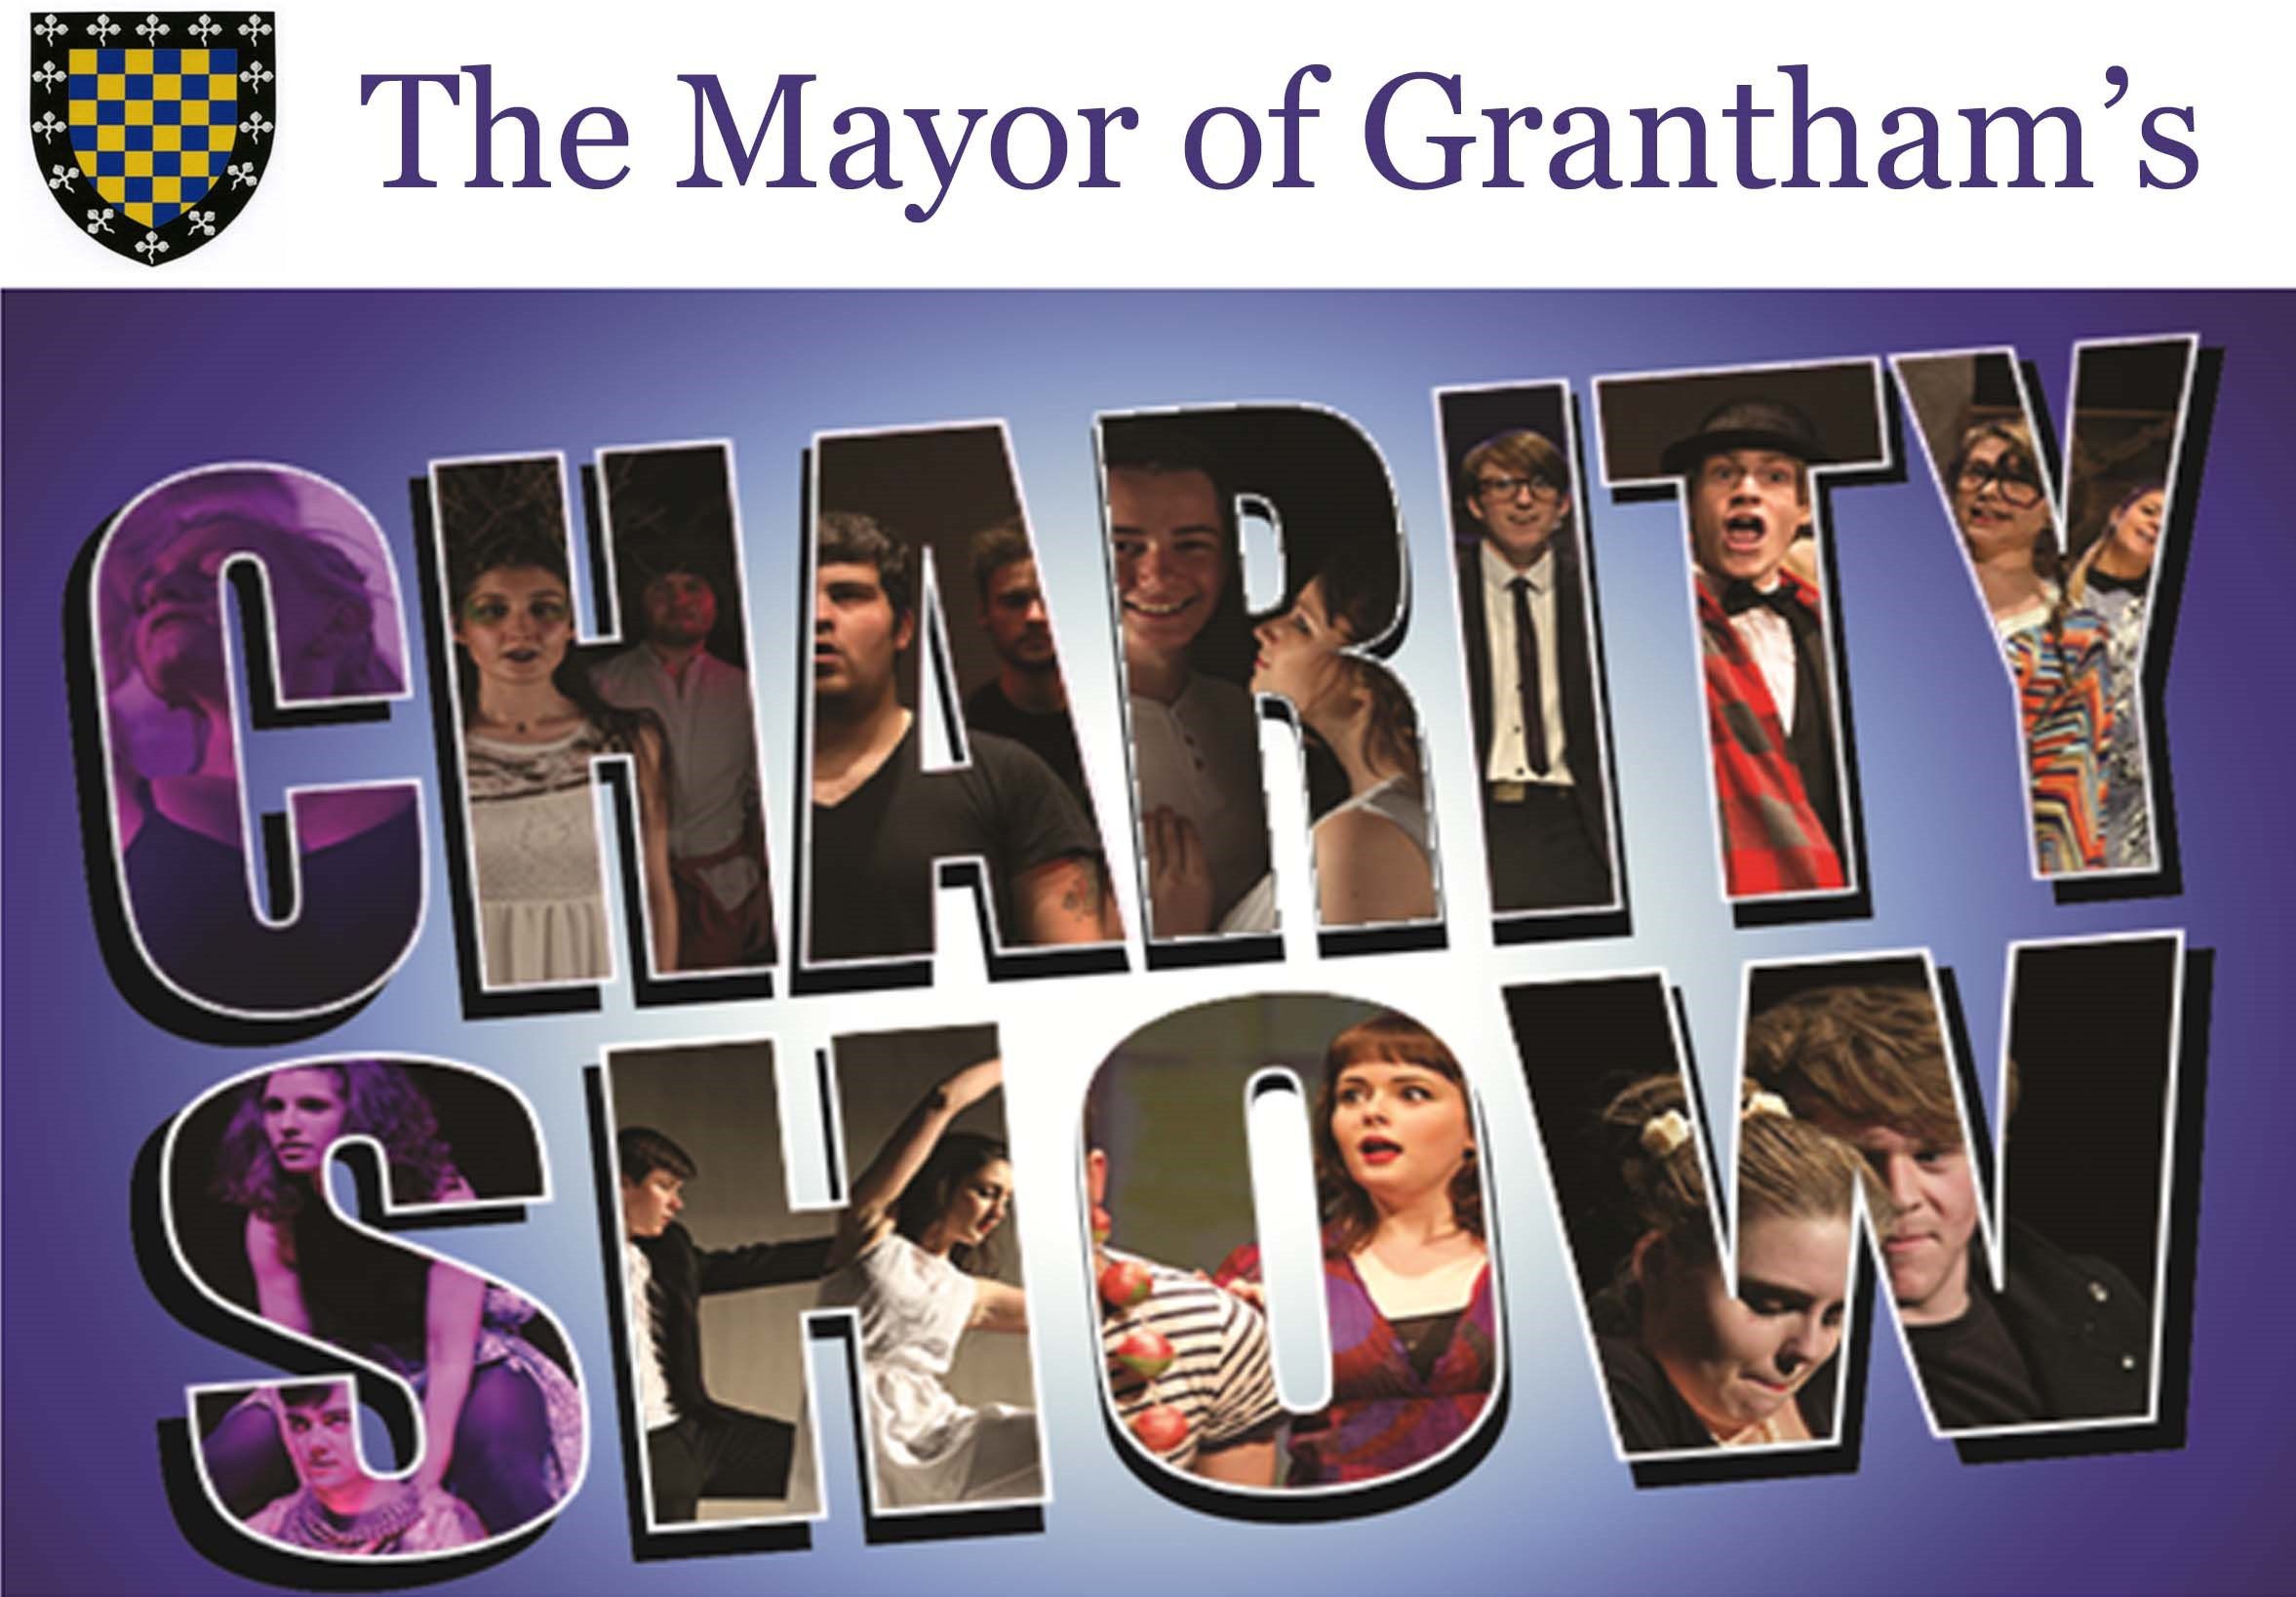 The Mayor of Grantham's Charity Show